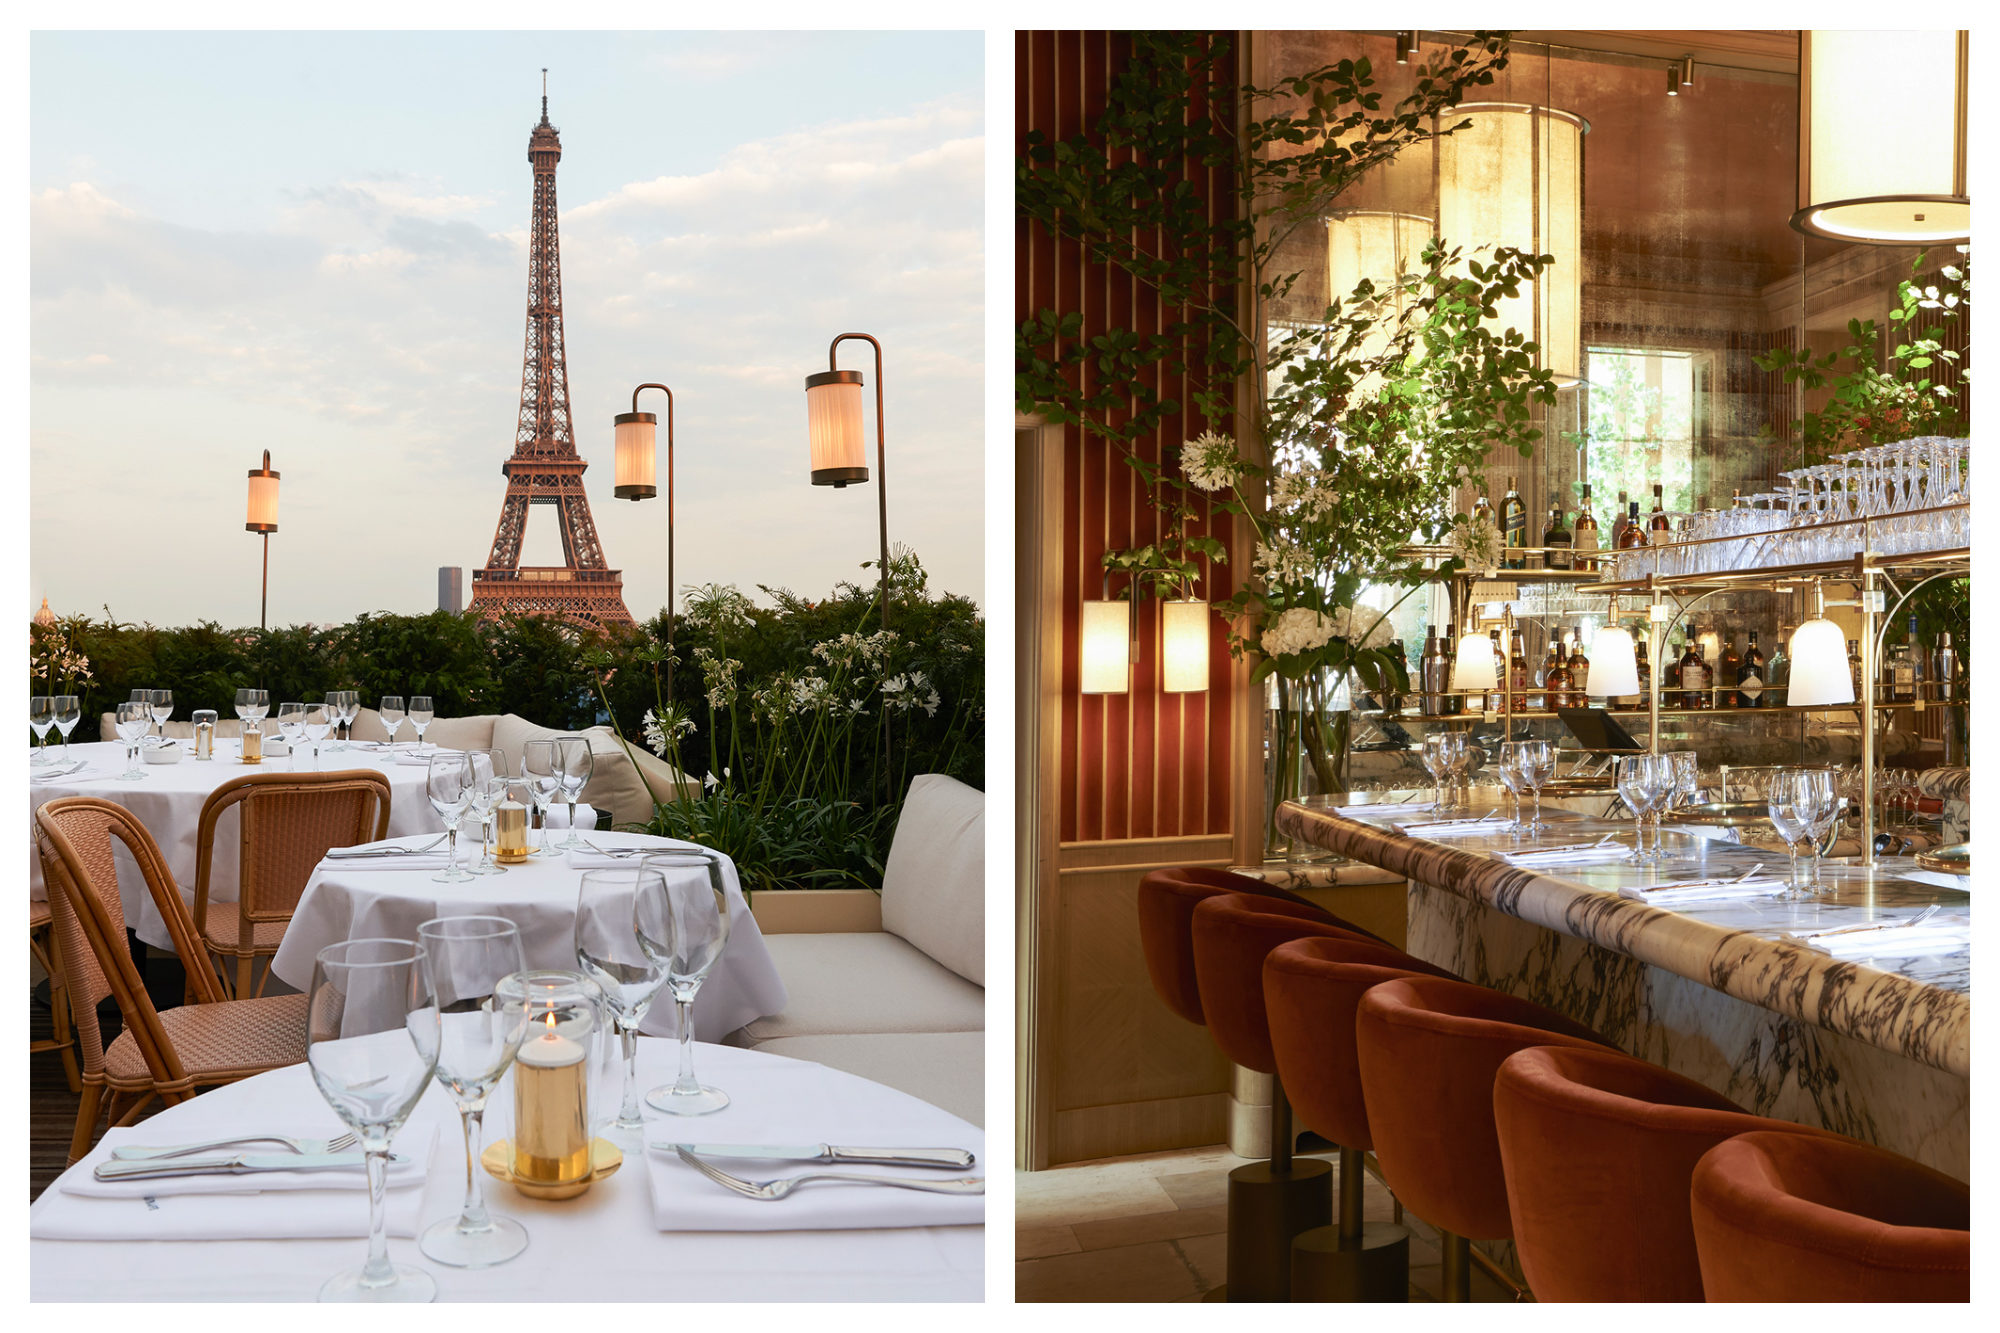 Tables dressed in crisp white tablecloths with an Eiffel Tower backdrop (left) and the gorgeous glamorous marble interiors (right) of Girafe restaurant in Paris.